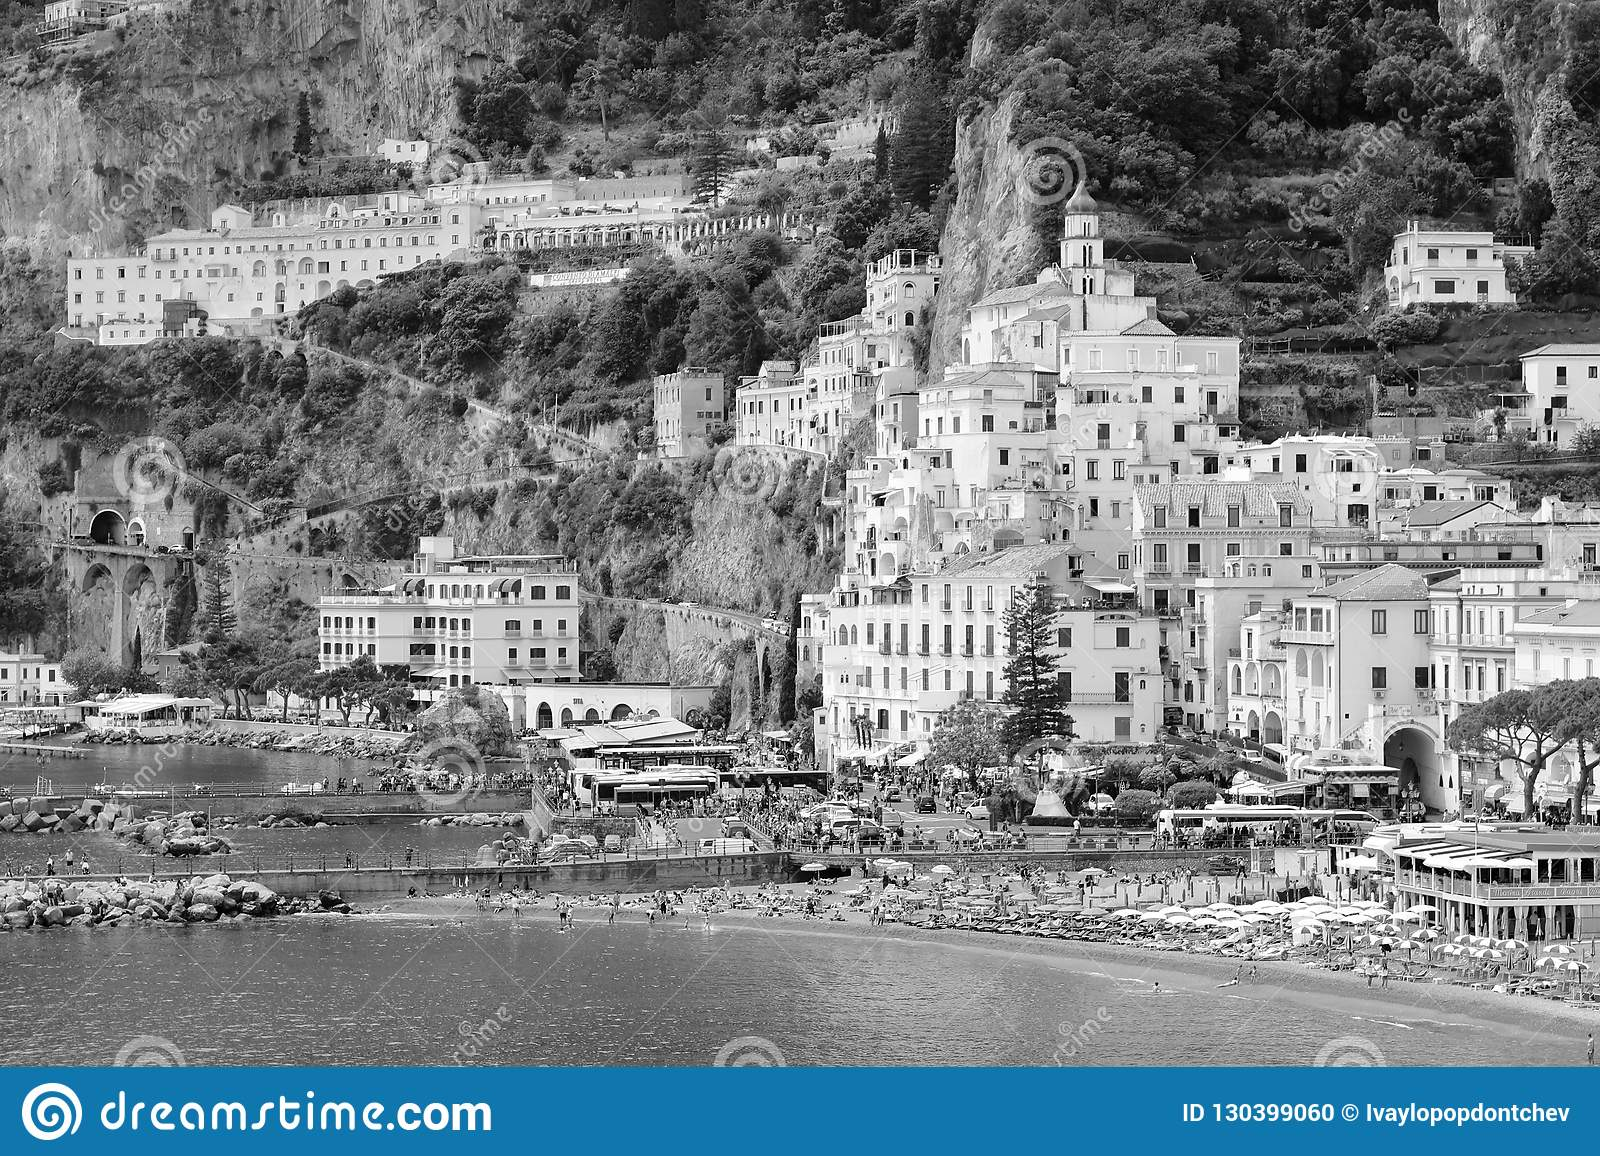 B&W image of Amalfi, Italy, Waterfront buildings, beach and port